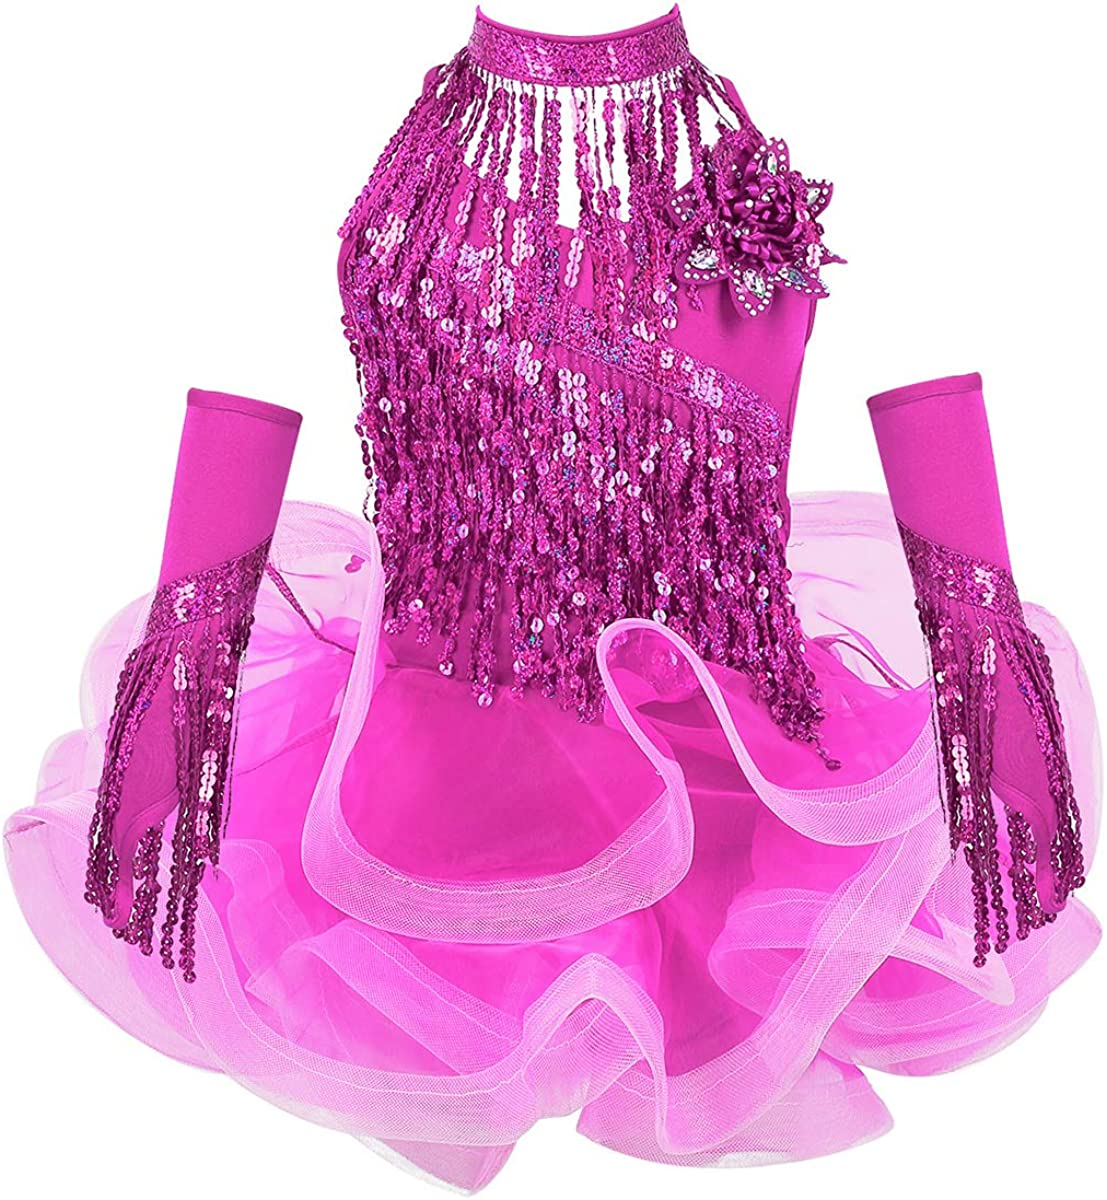 inhzoy Girls Sequins Dance Outfits shopping Costumes Salsa Ballroom Latin It is very popular